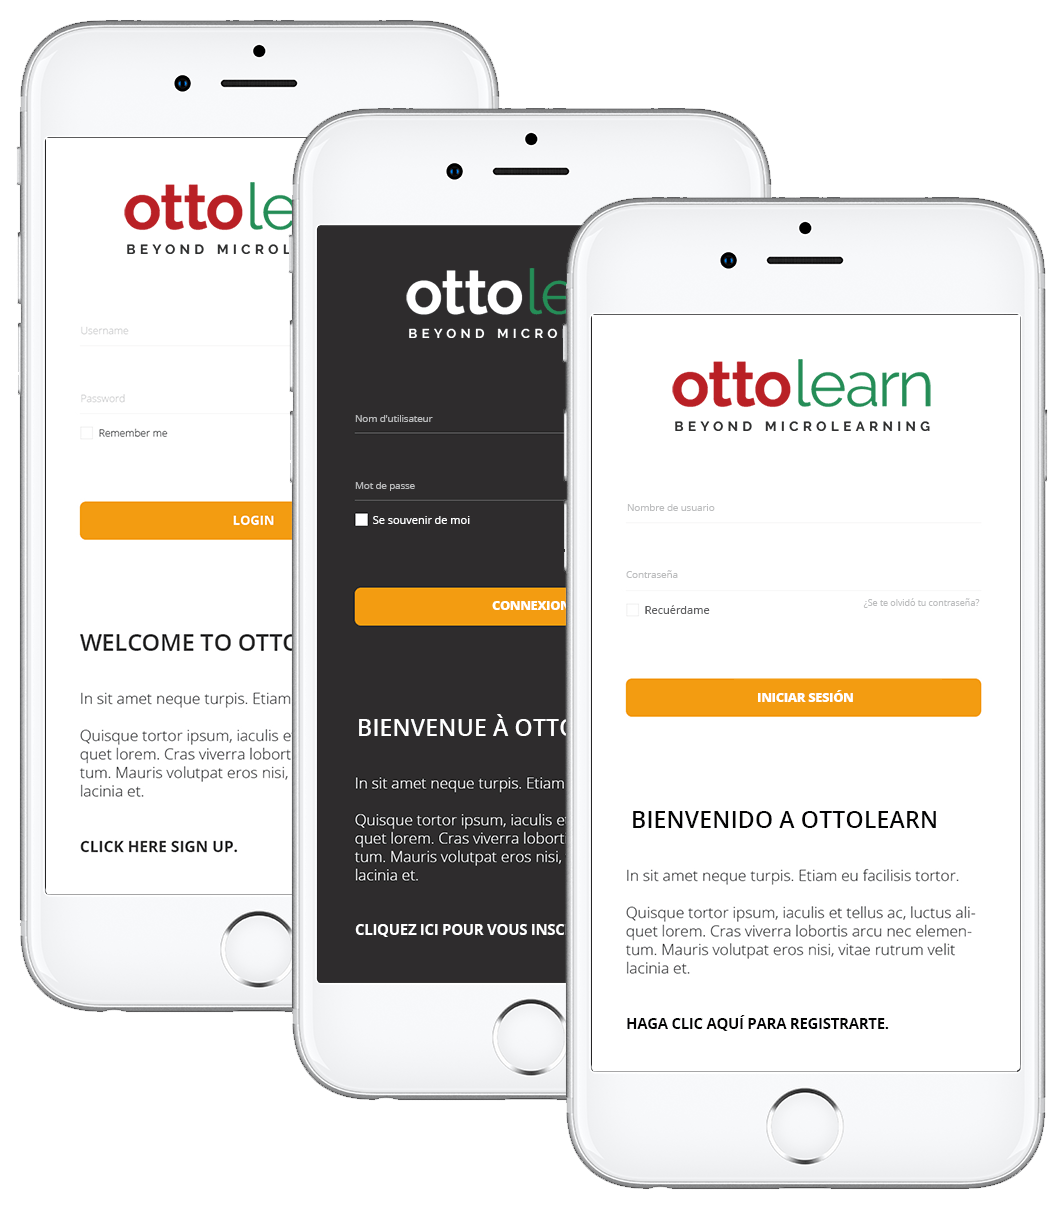 Otto's Platform is Multilingual - OttoLearn Adaptive Microlearning